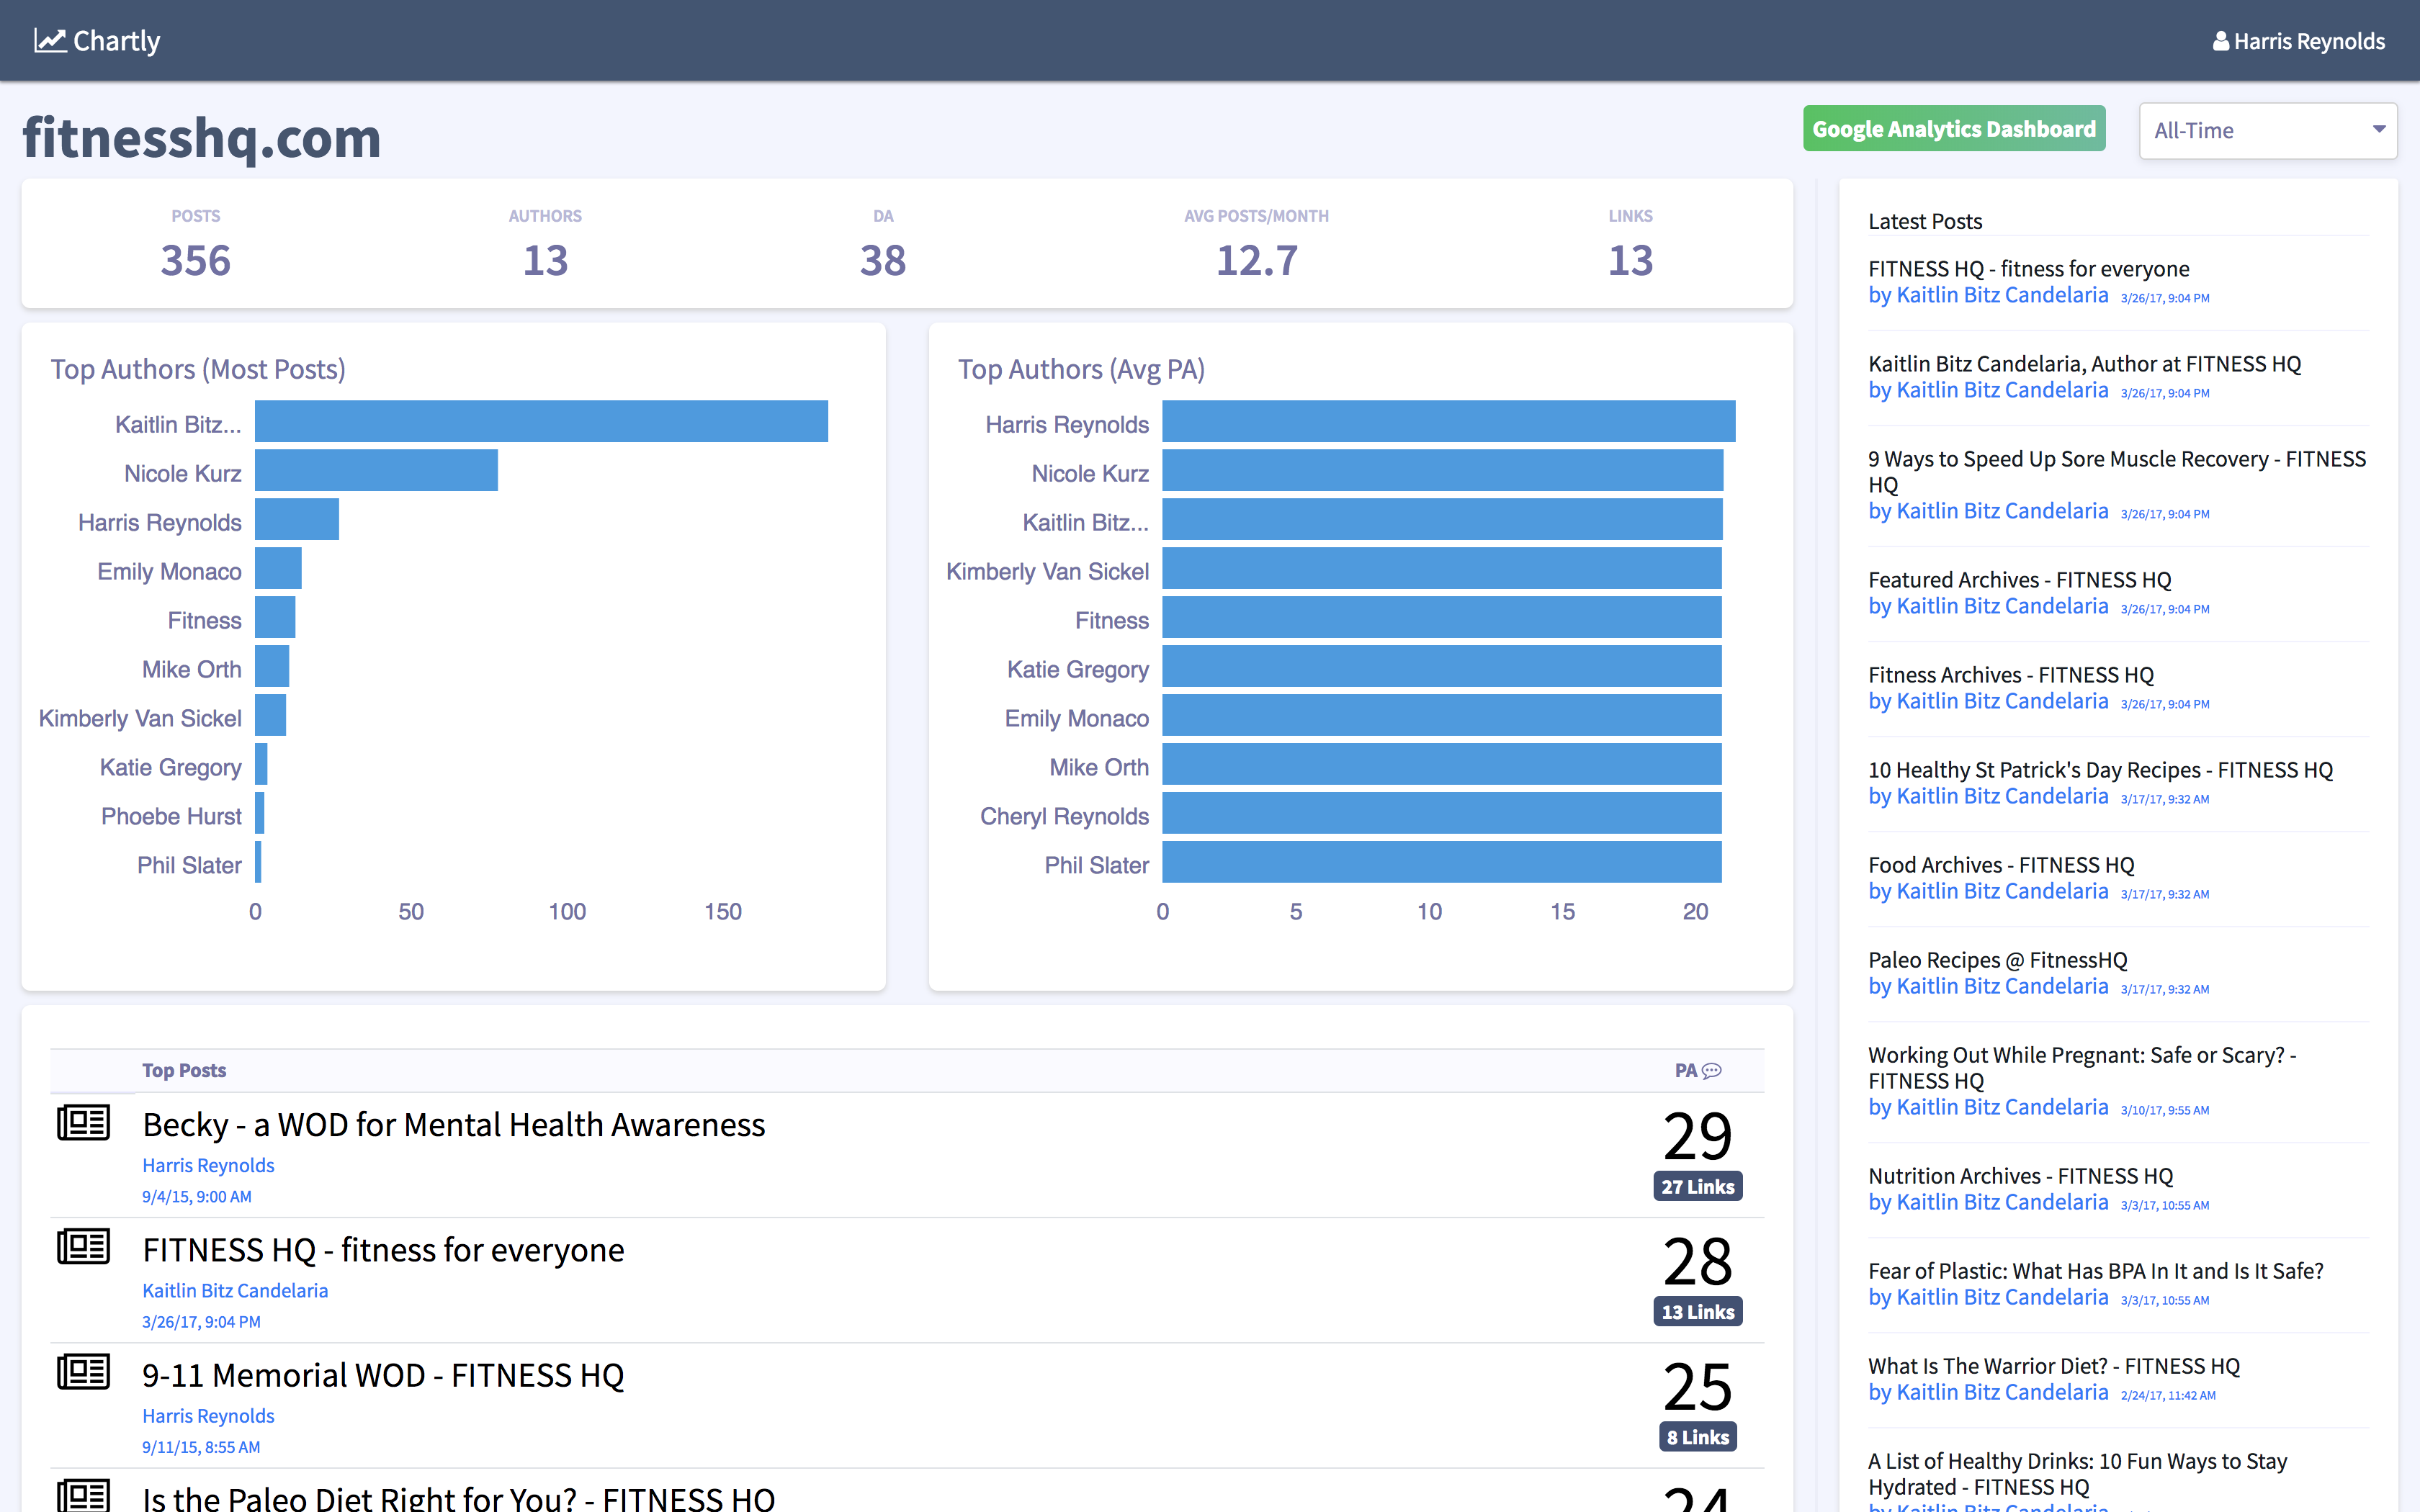 Seo dashboard screenshot